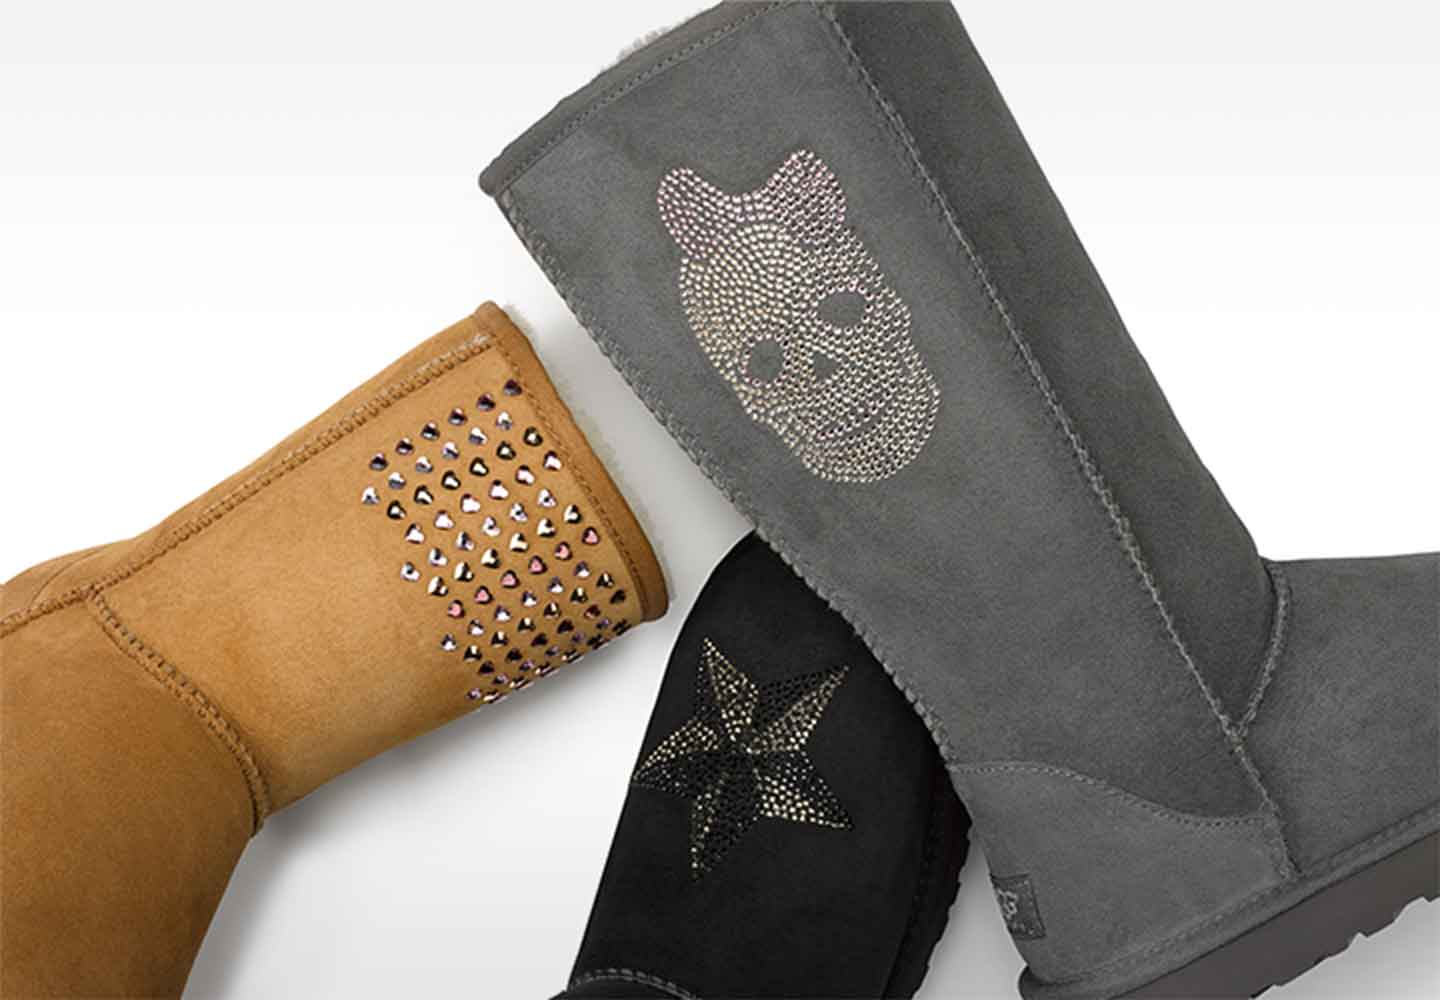 Ugg classic boots with rhinestones